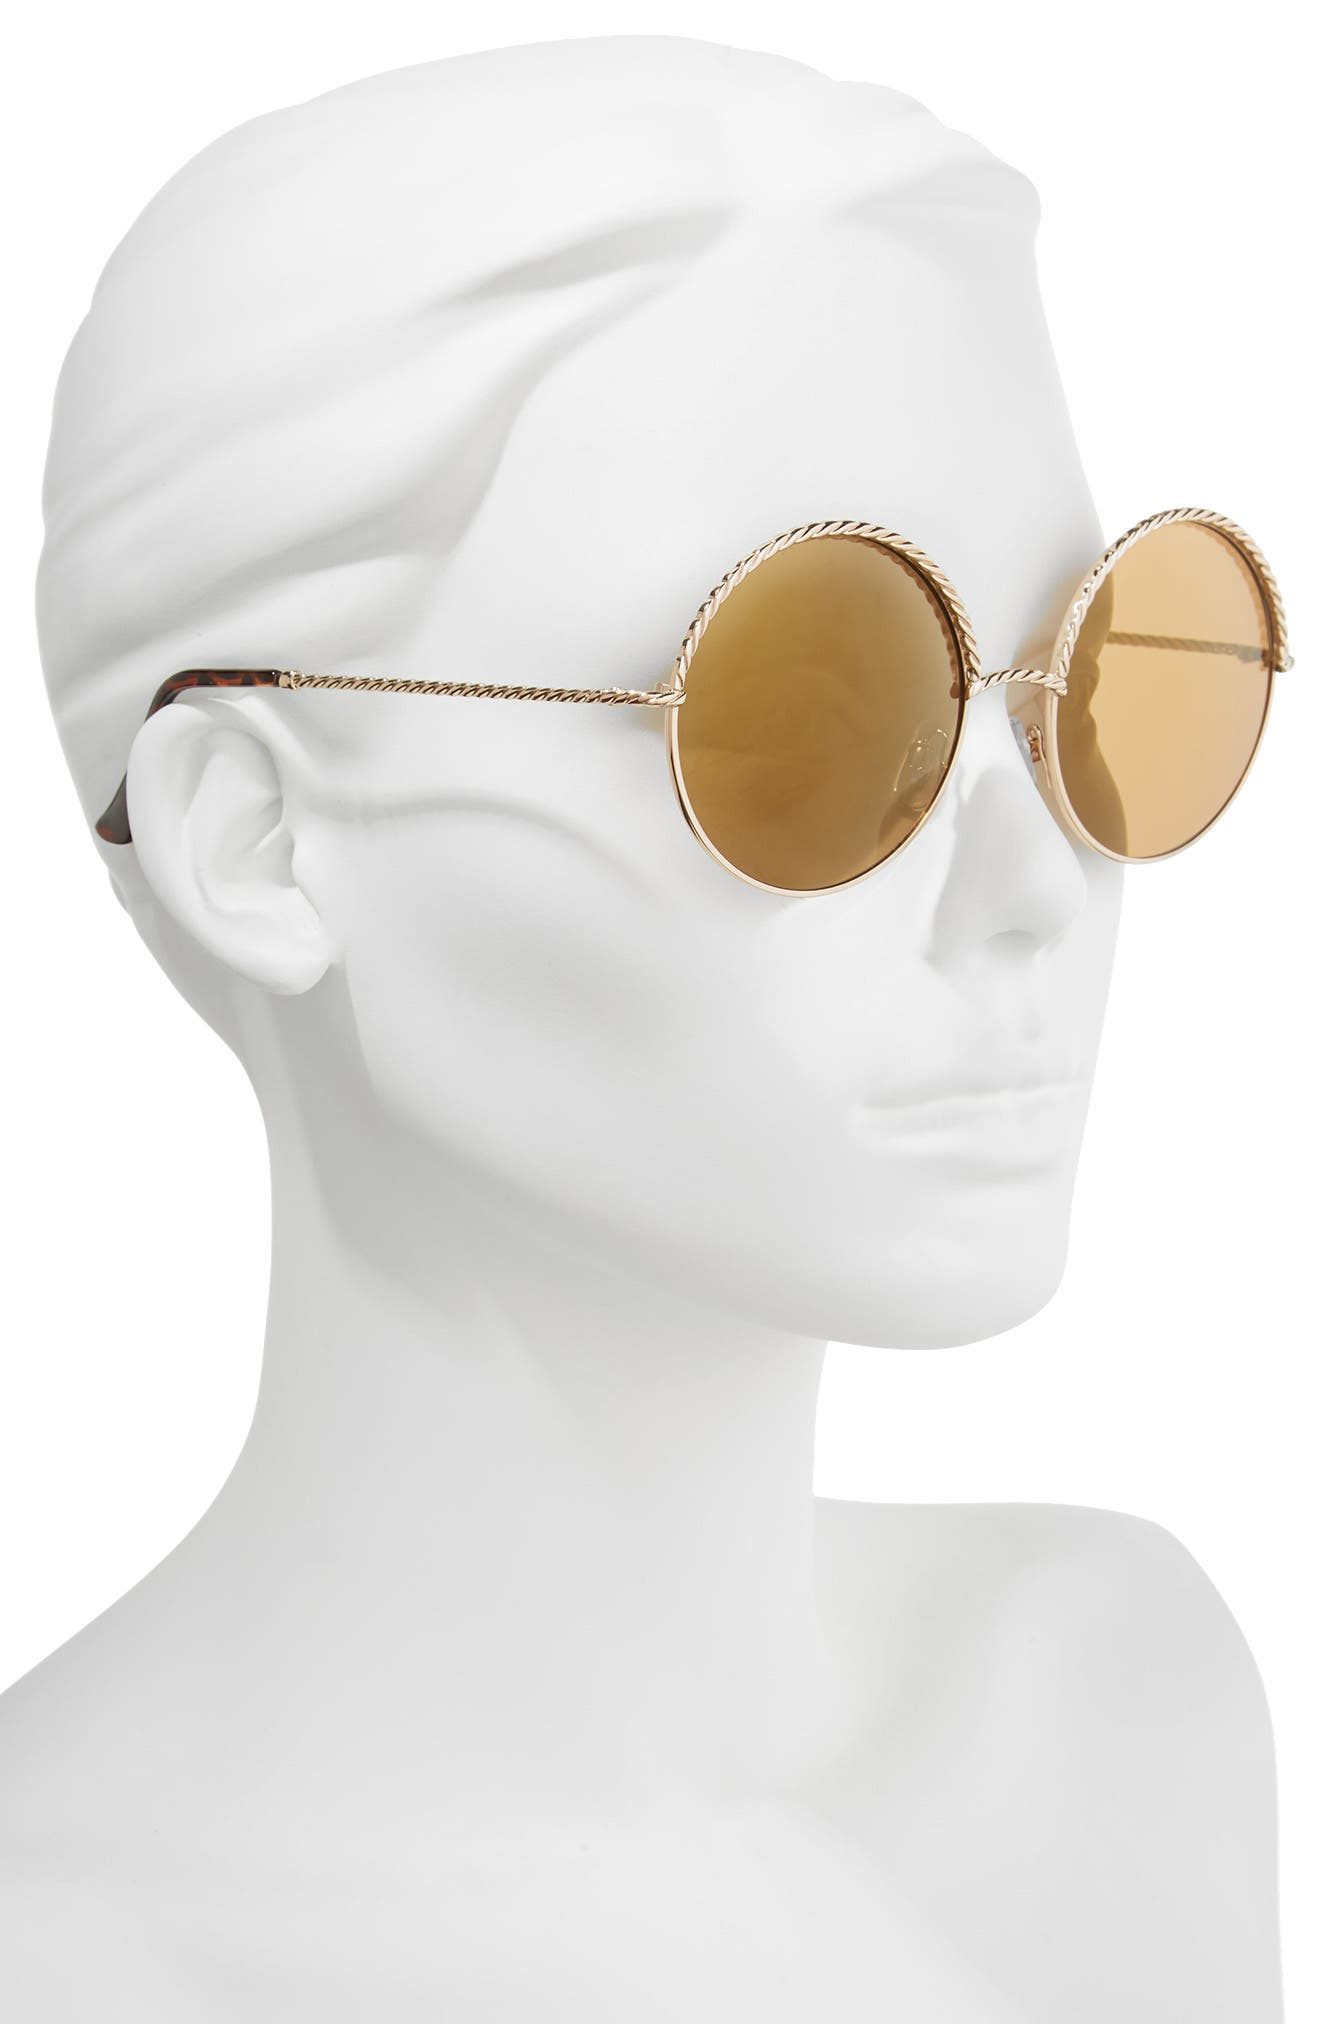 58mm Chain Trim Round Sunglasses,                             Alternate thumbnail 3, color,                             Gold/ Brown